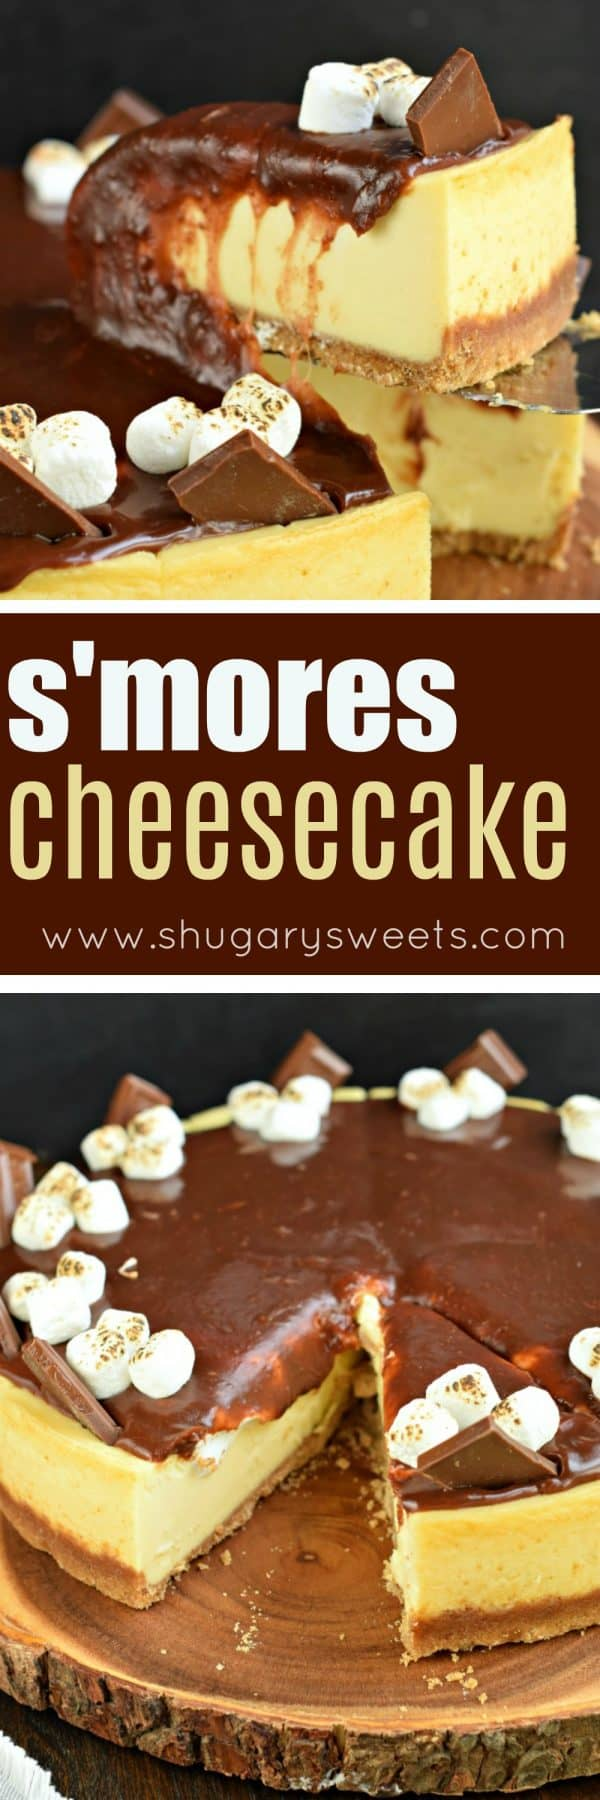 Mouthwatering and perfect, this S'mores Cheesecake recipe is made with marshmallow cream and homemade chocolate ganache. Make the cheesecake ahead of time and top it when you're ready to enjoy! #cheesecake #smores